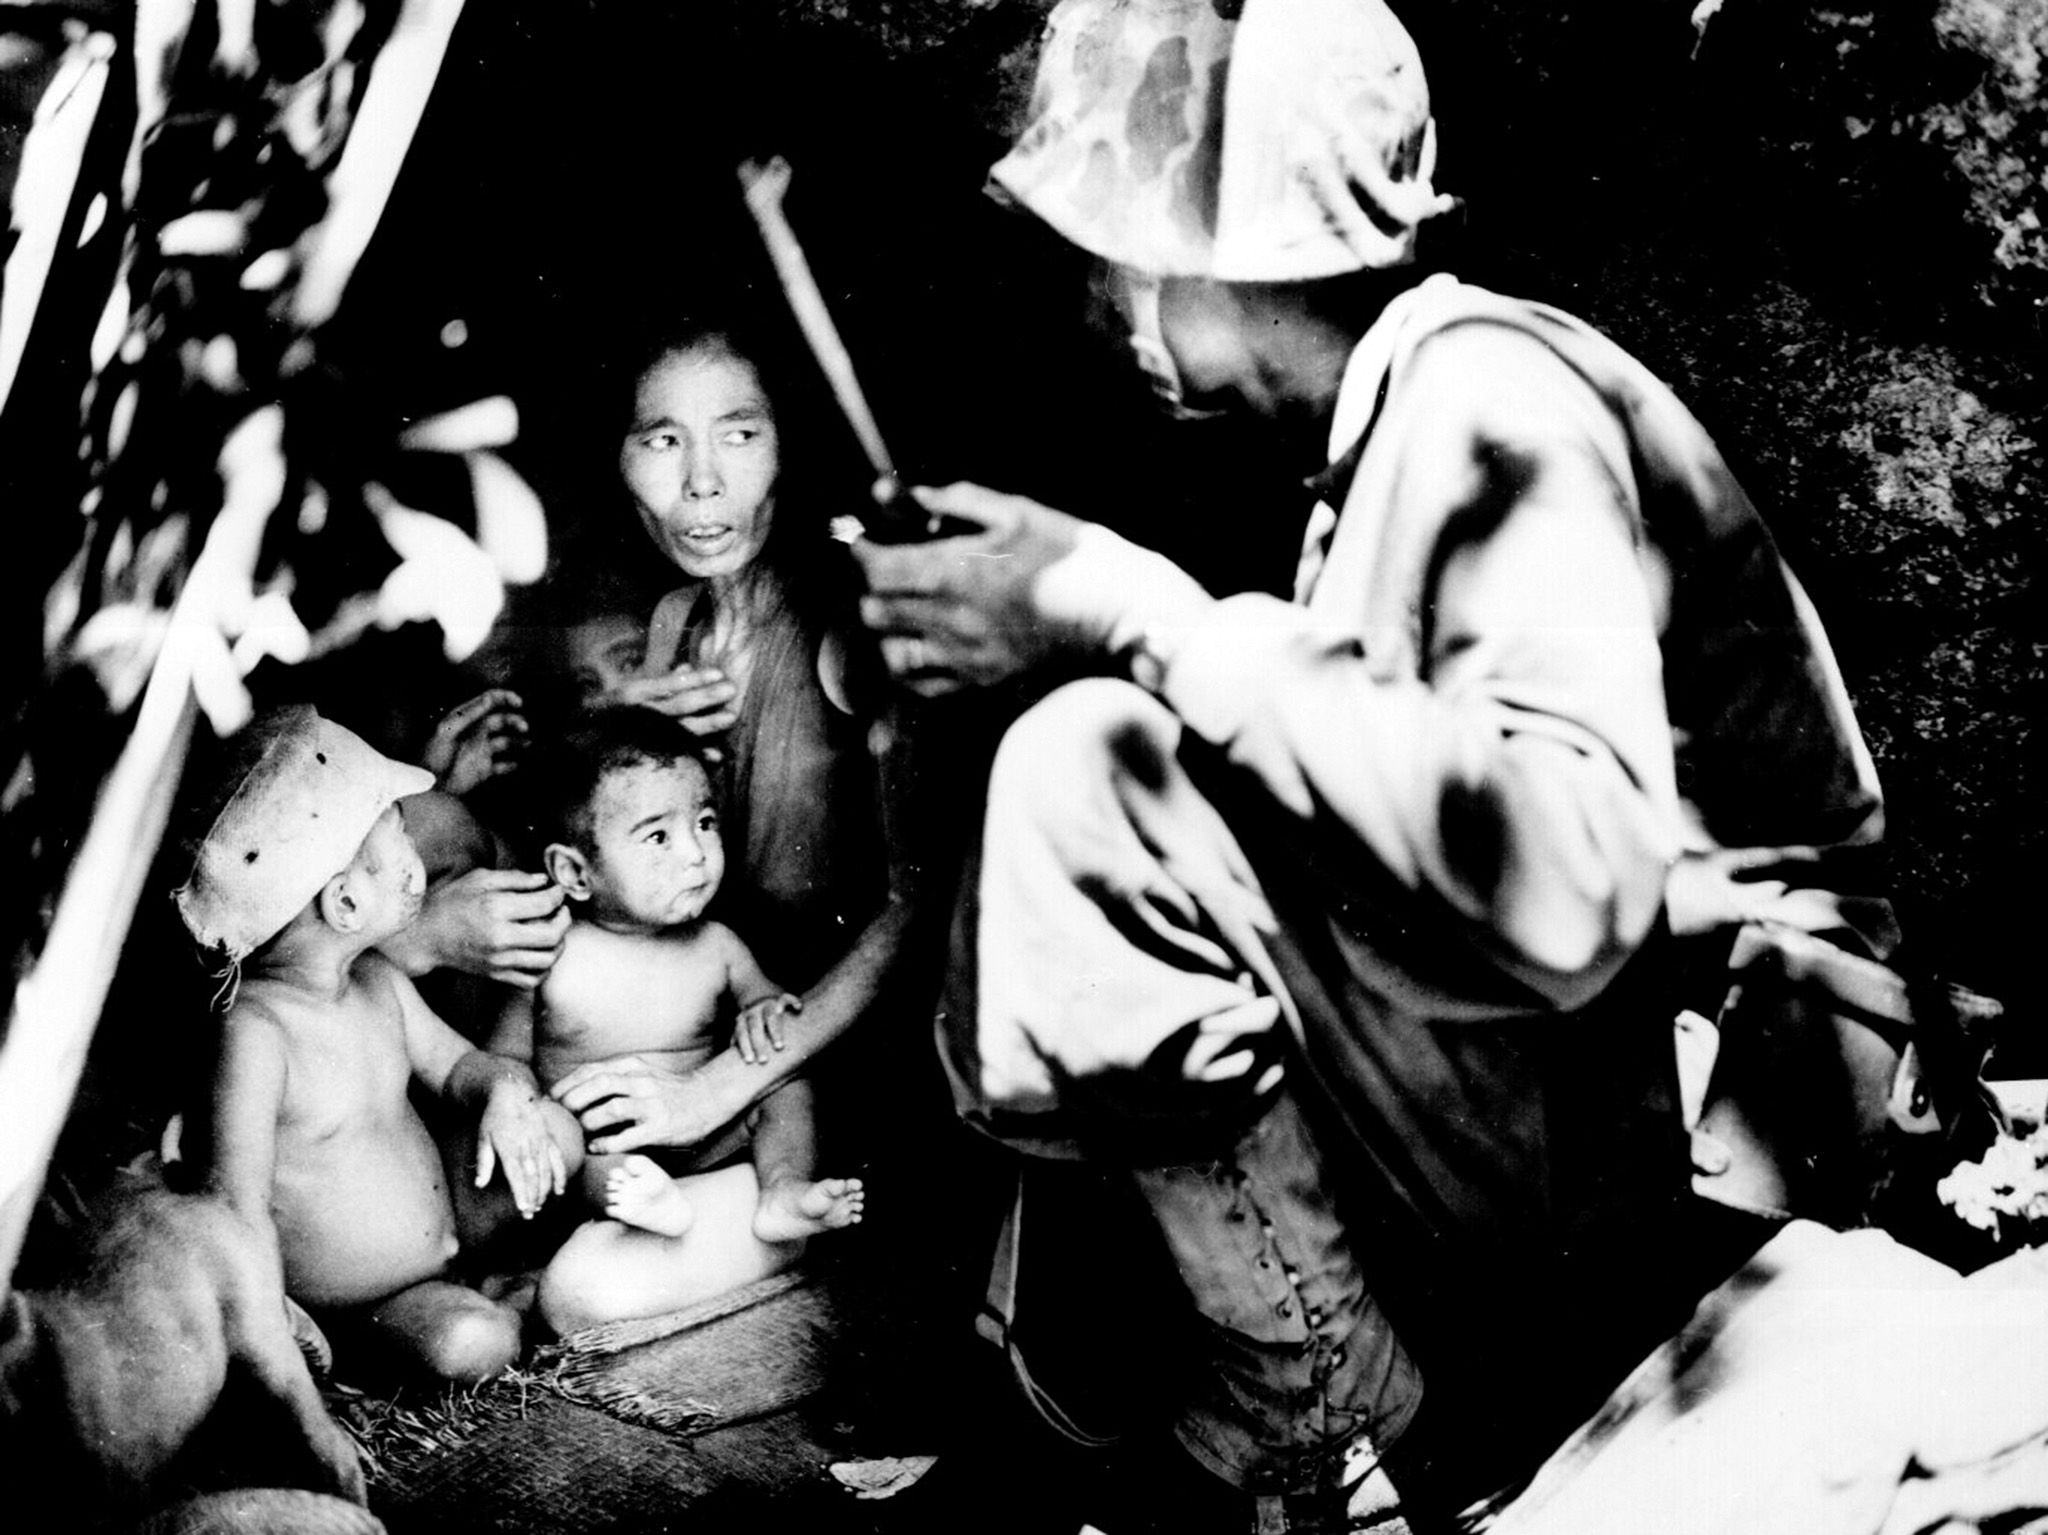 Saipan:  A member of a Marine patrol on Saipan found this family of Japanese civilians hiding in... [Foto del giorno - settembre 2018]